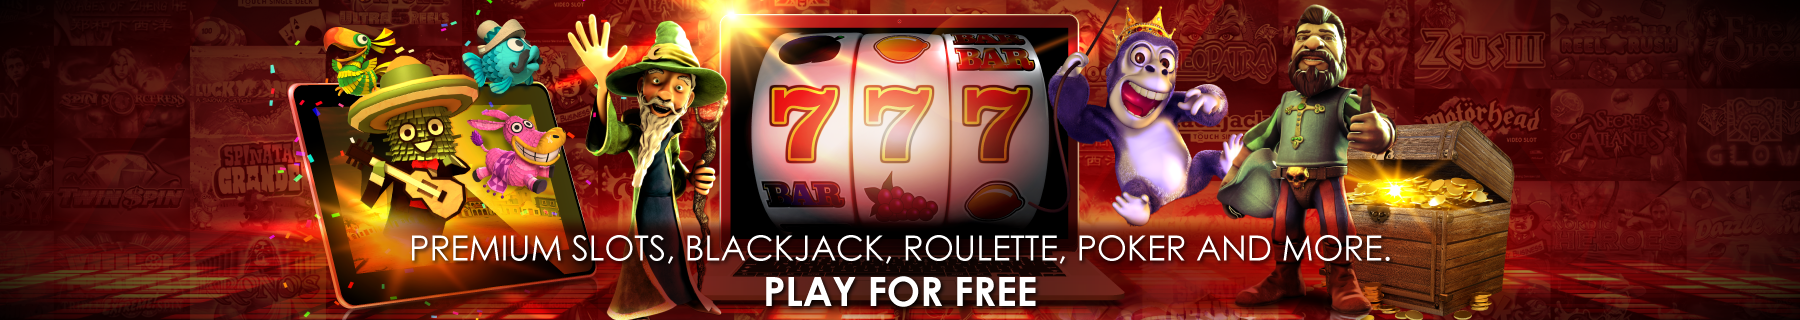 Largest Selection of Free Play Desktop Casino Games in New Jersey